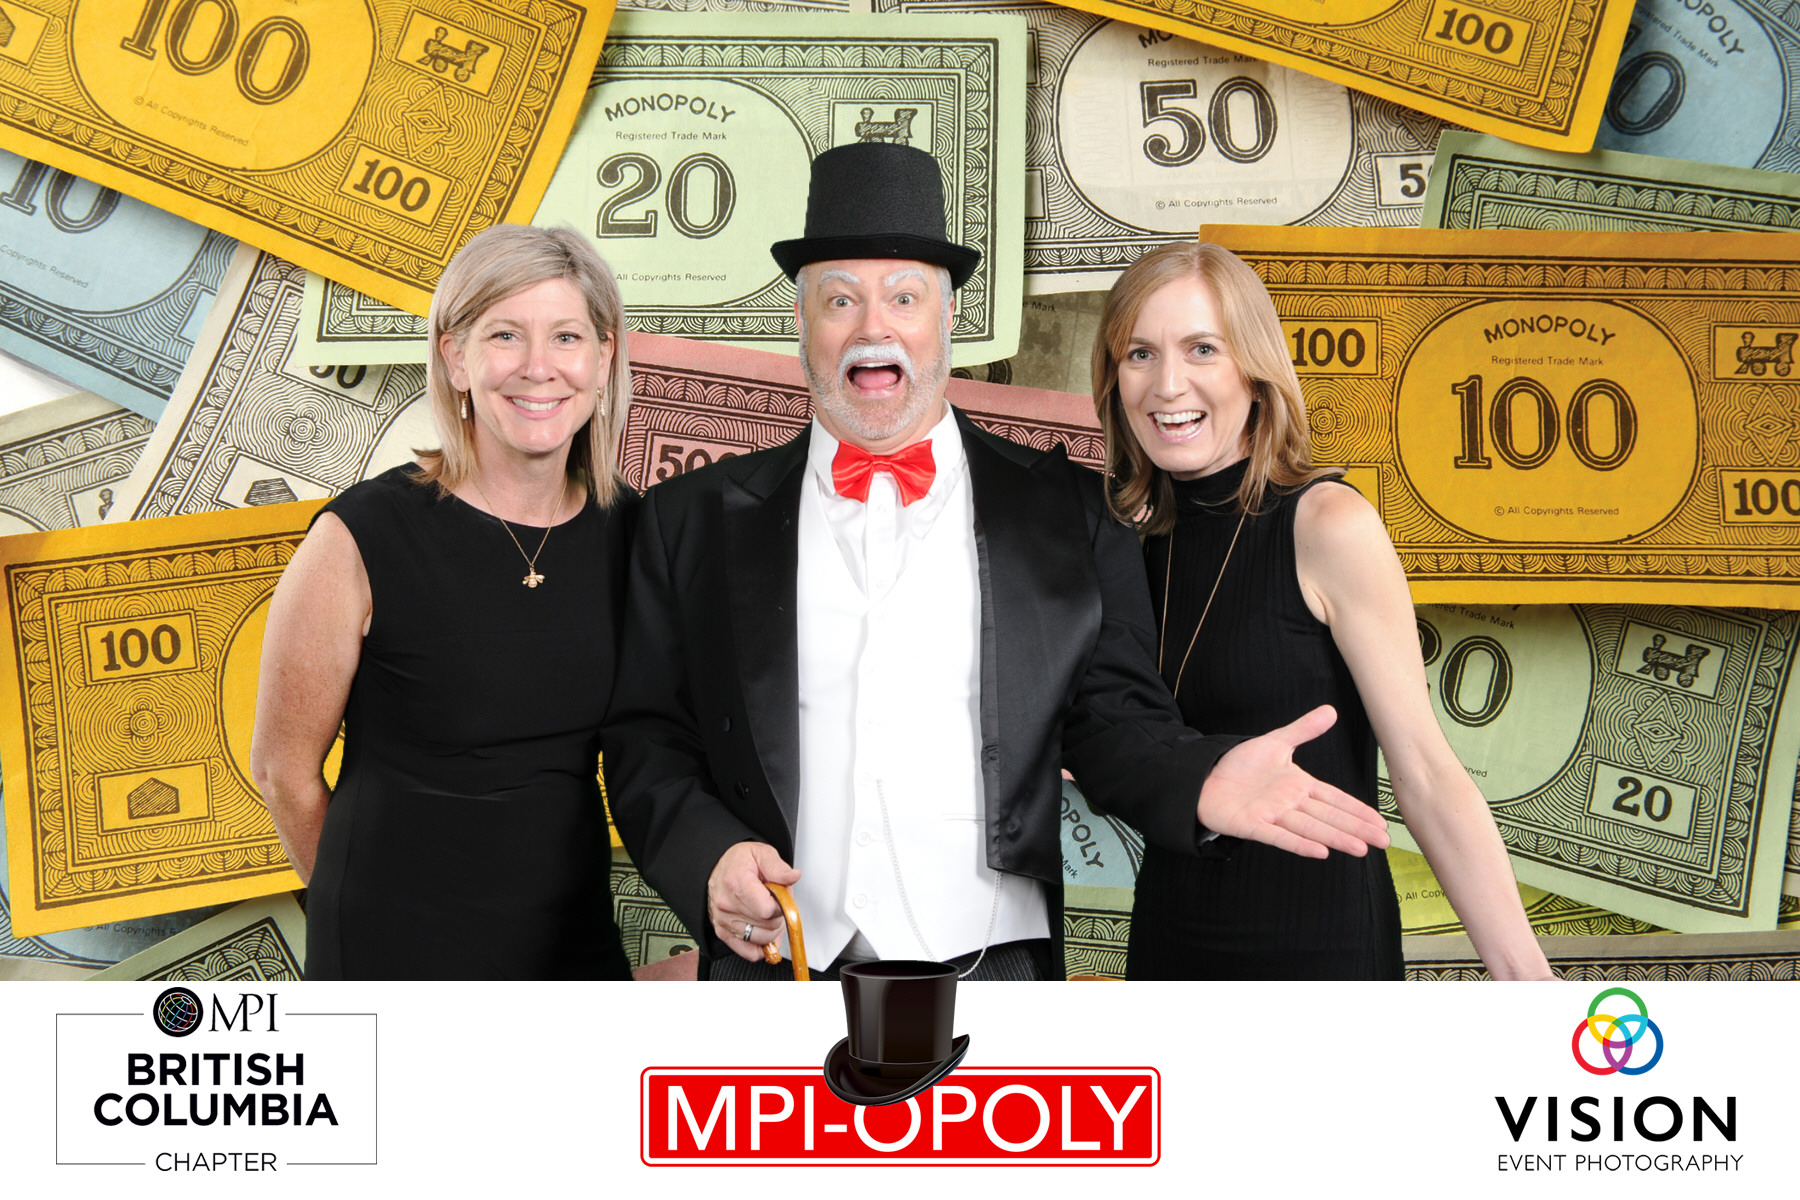 Pearce as The Monopoly Man for MPI